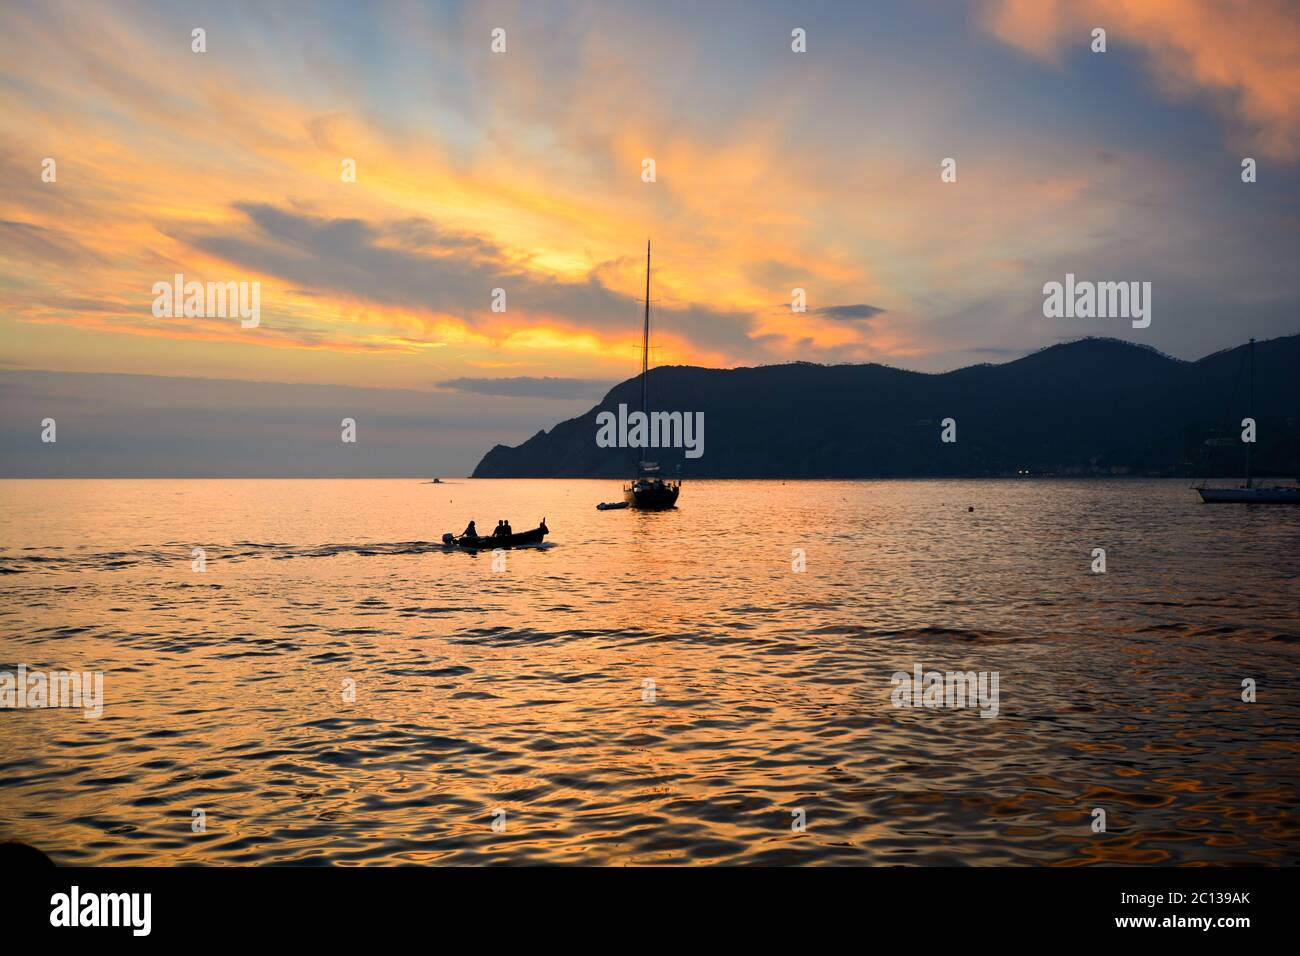 Two boats along the Ligurian coast of Vernazza harbor at sunset along the Cinque Terre, Italy Stock Photo